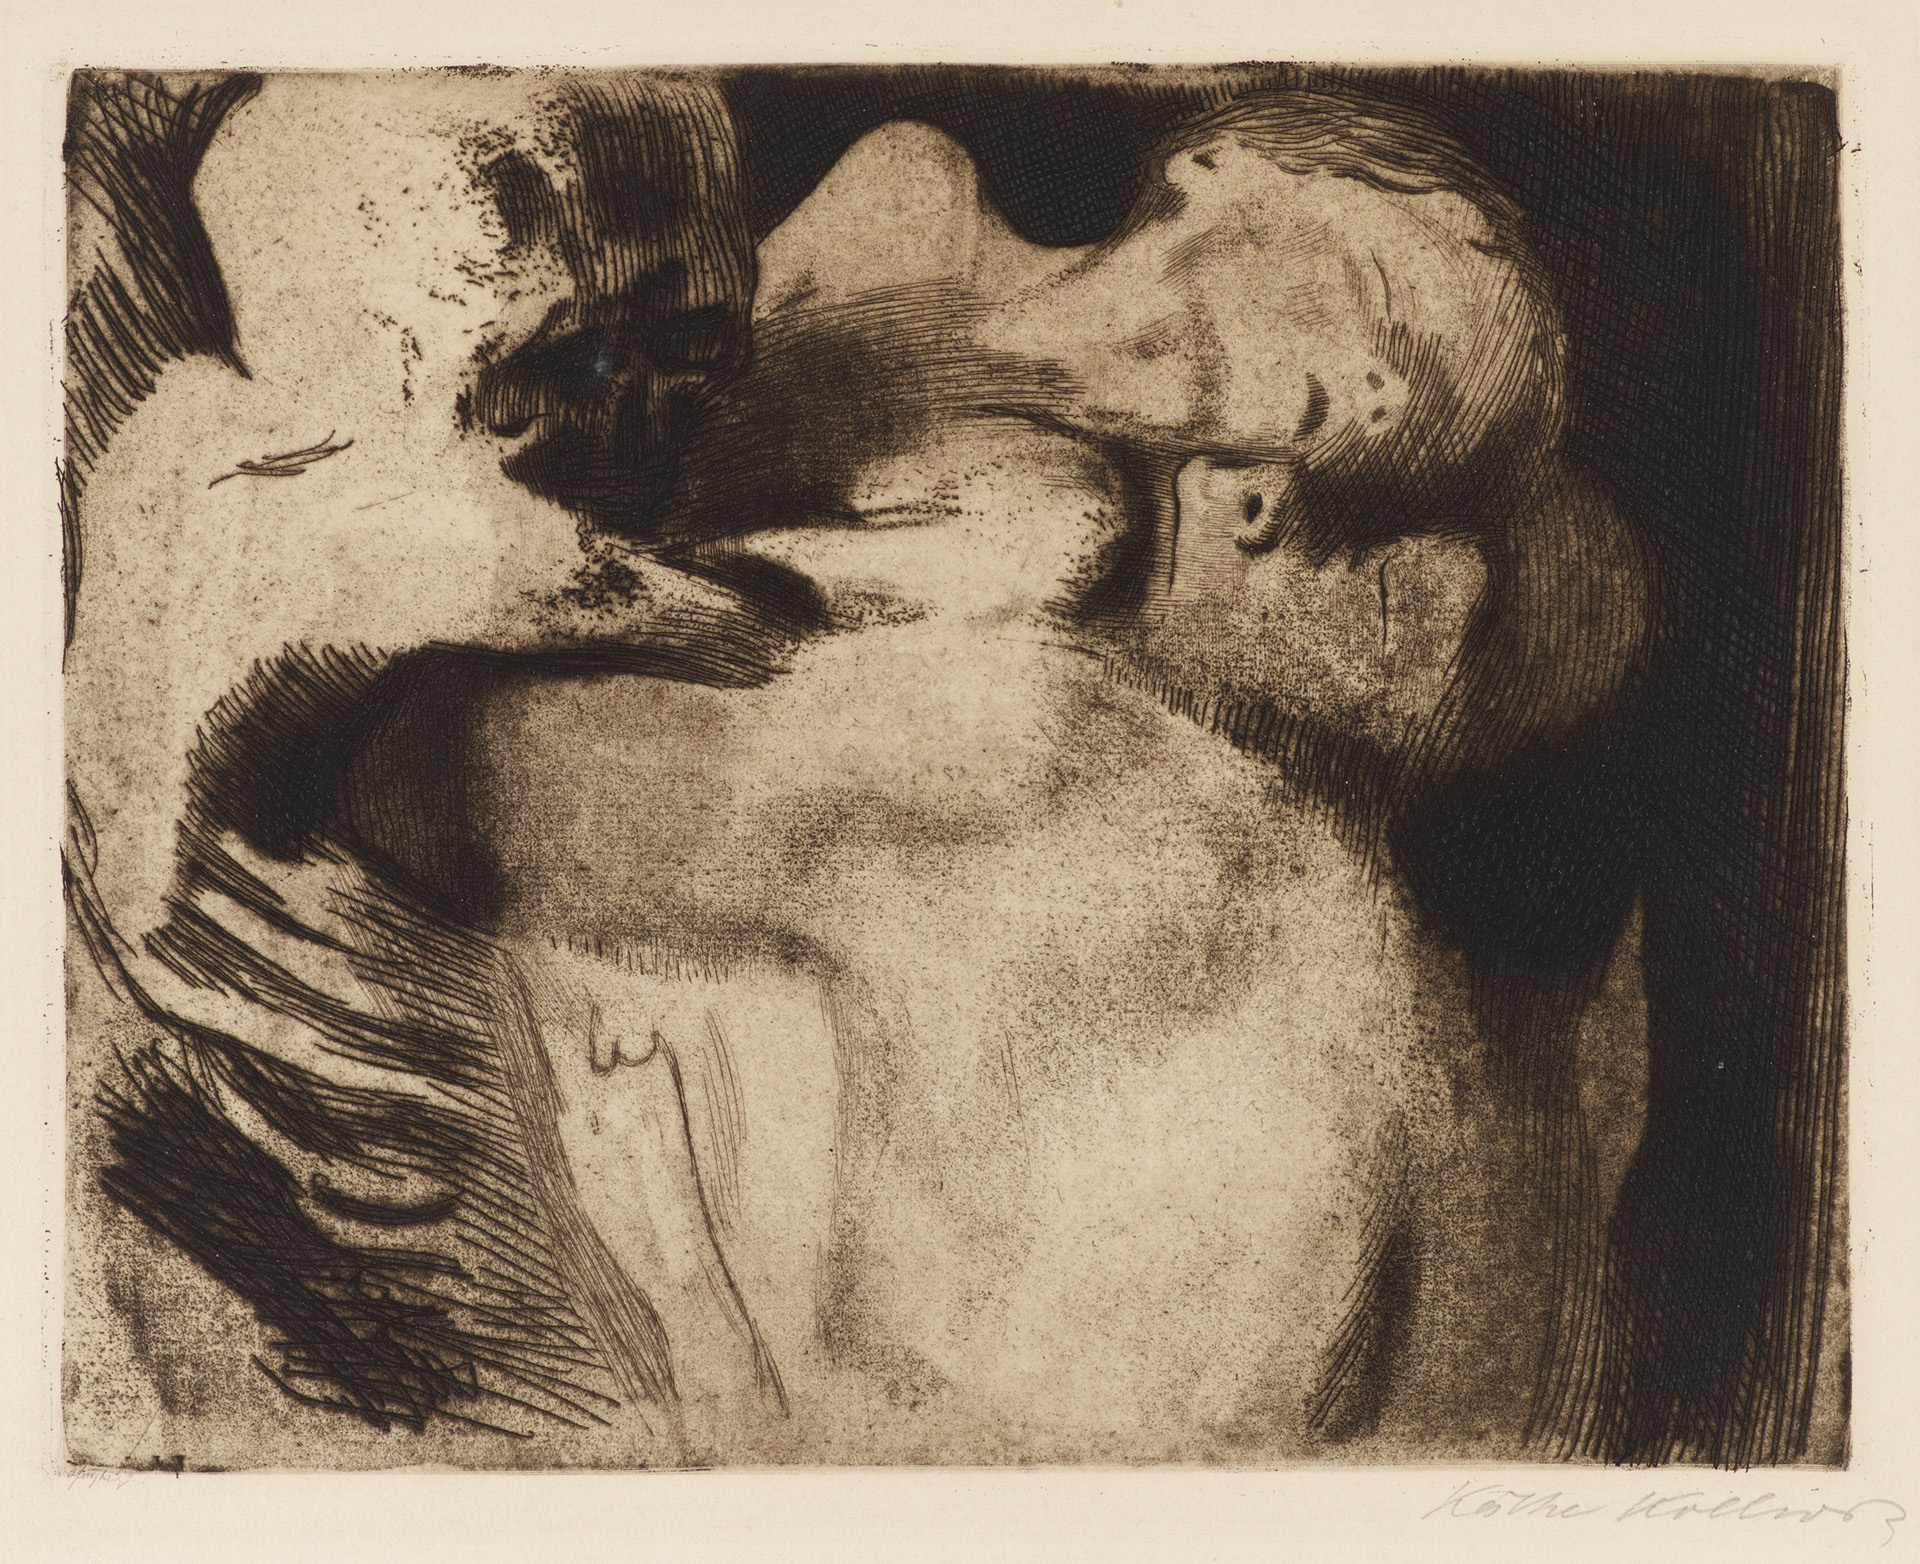 Käthe Kollwitz, Death and Woman wrestling over a Child, 1911, line etching, drypoint, sandpaper and vernis mou with imprint of laid paper, Kn 121 IX b, Cologne Kollwitz Collection © Käthe Kollwitz Museum Köln